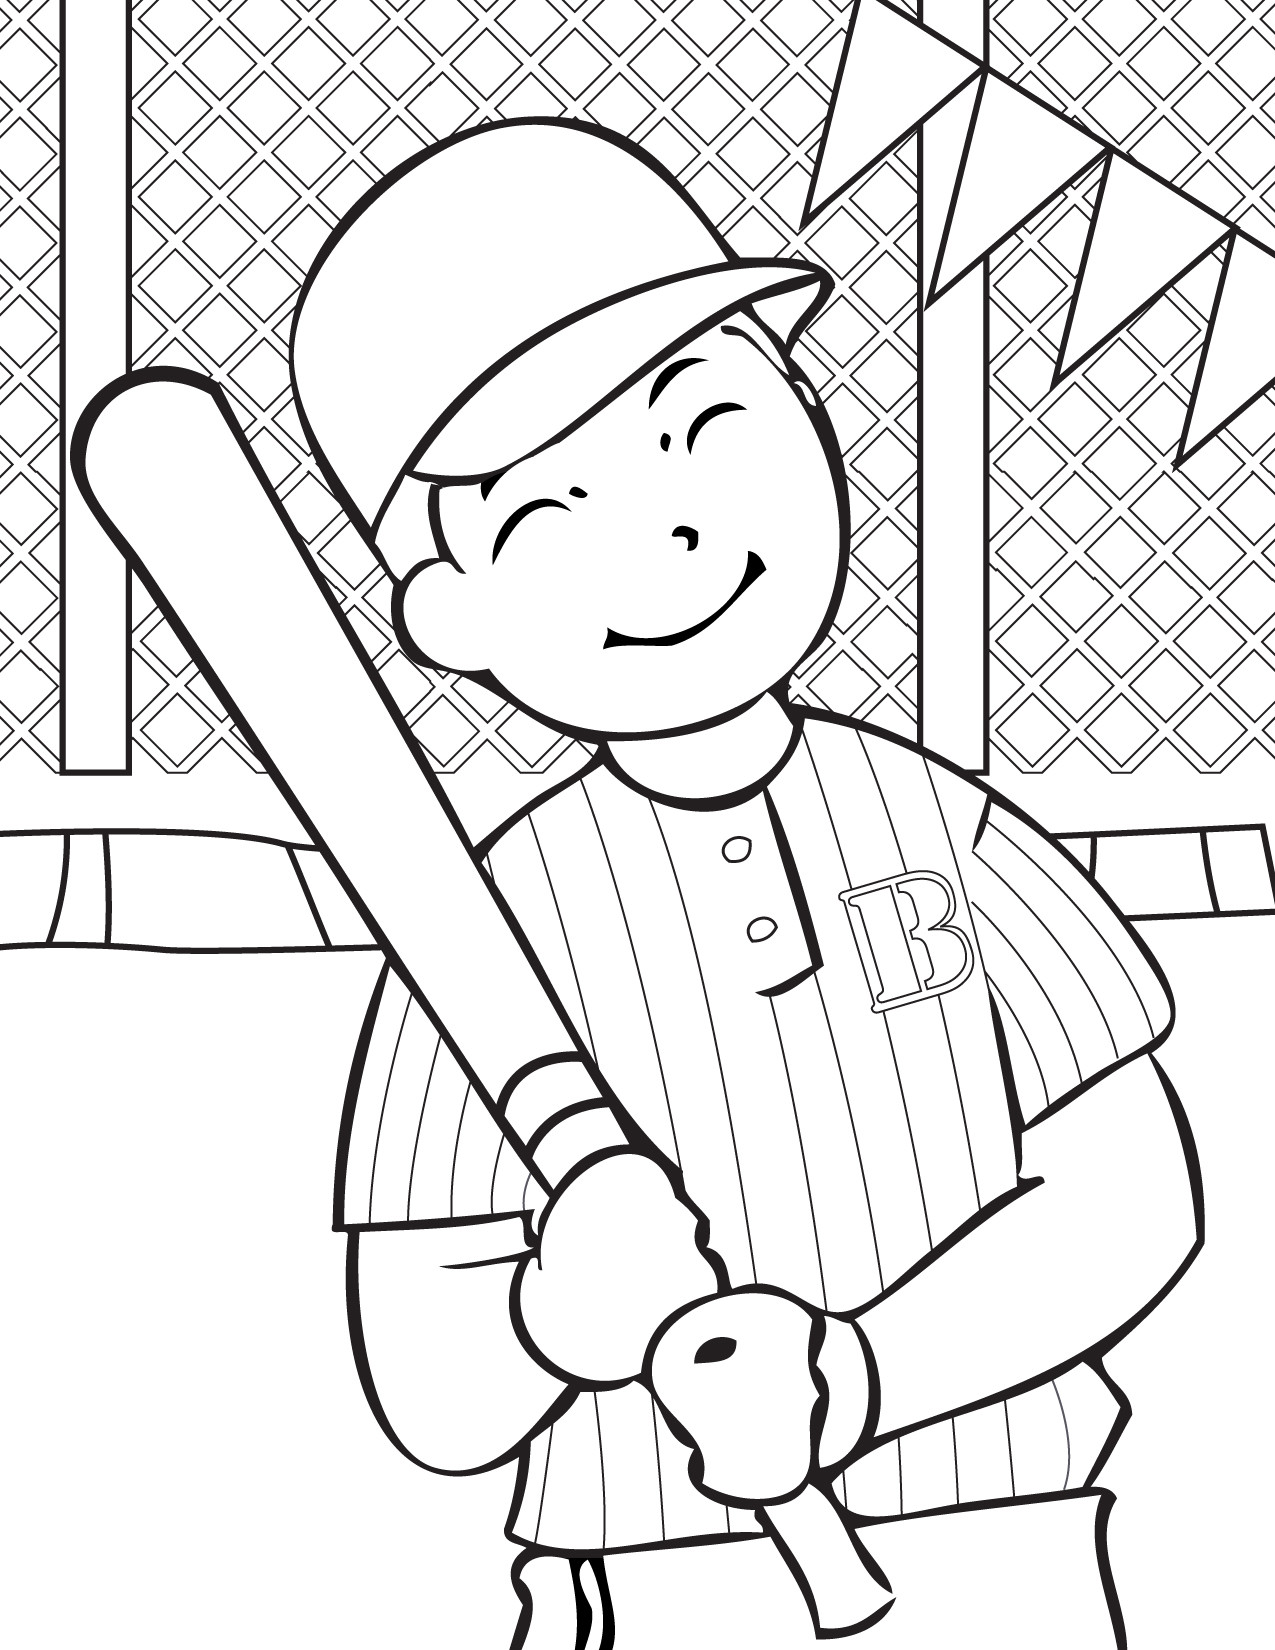 Coloring Book For Kids Games  Free Printable Baseball Coloring Pages for Kids Best